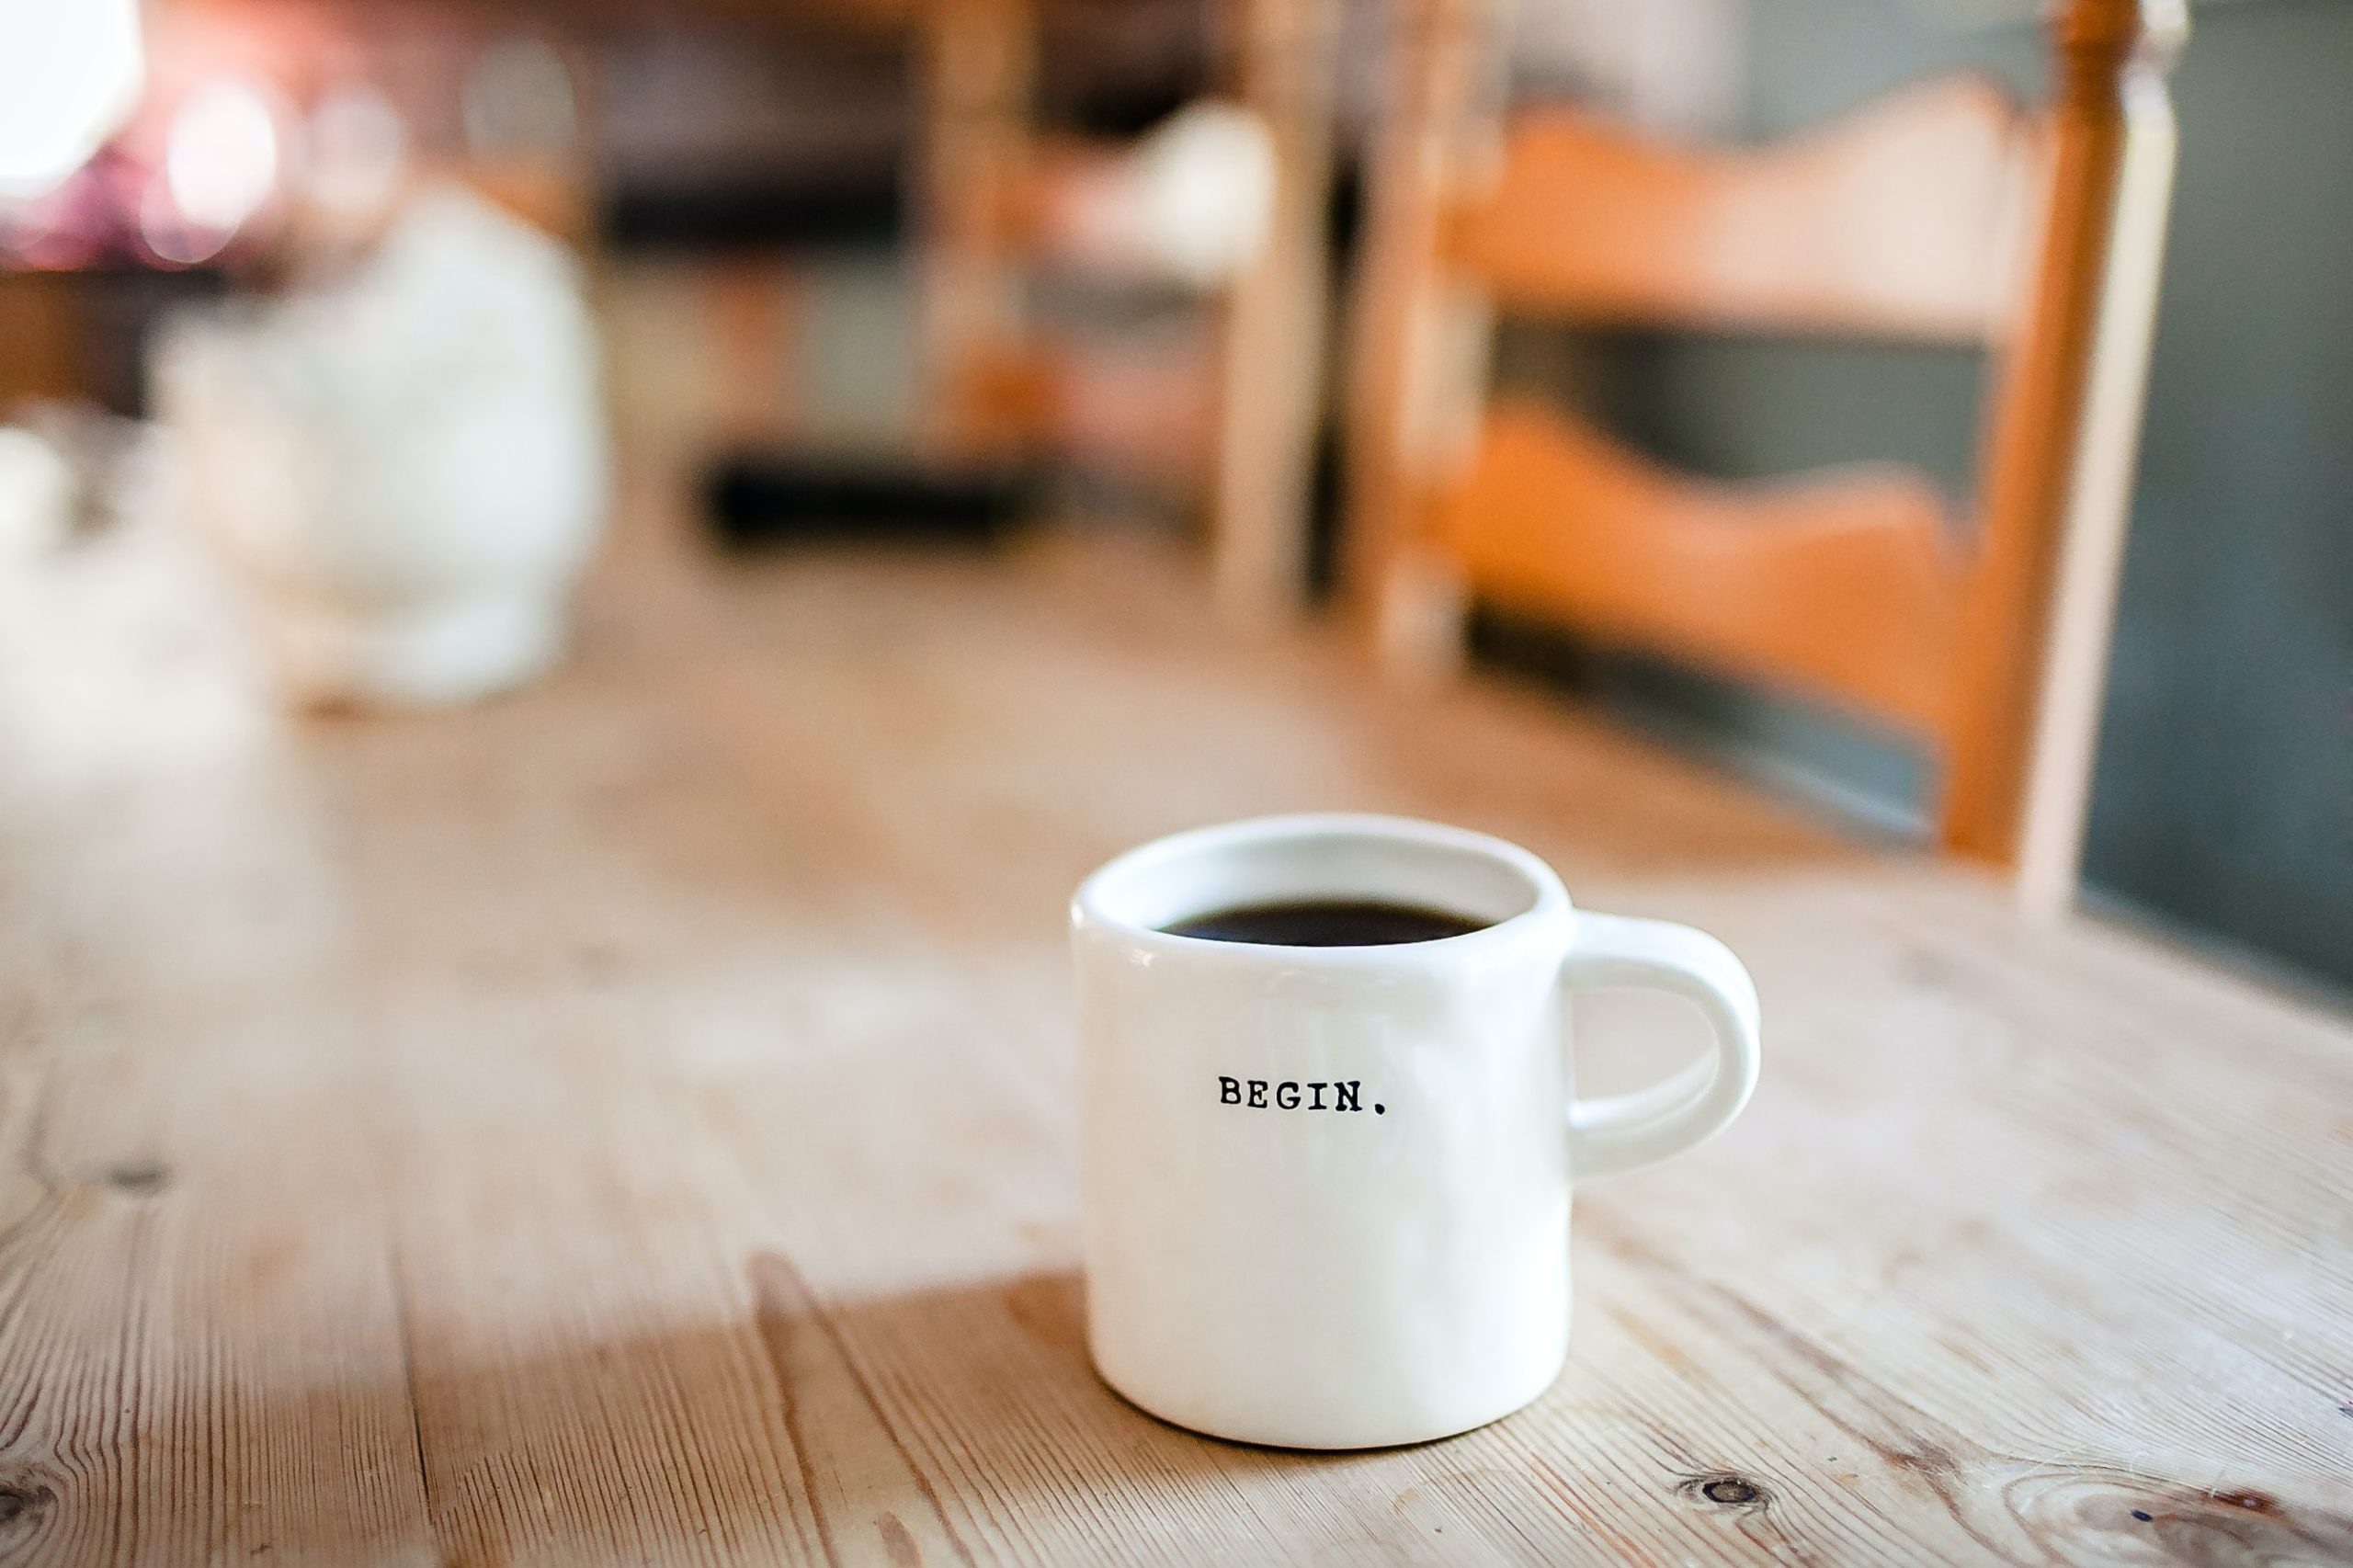 white coffee mug on a wooden table with the word begin on it in typeface